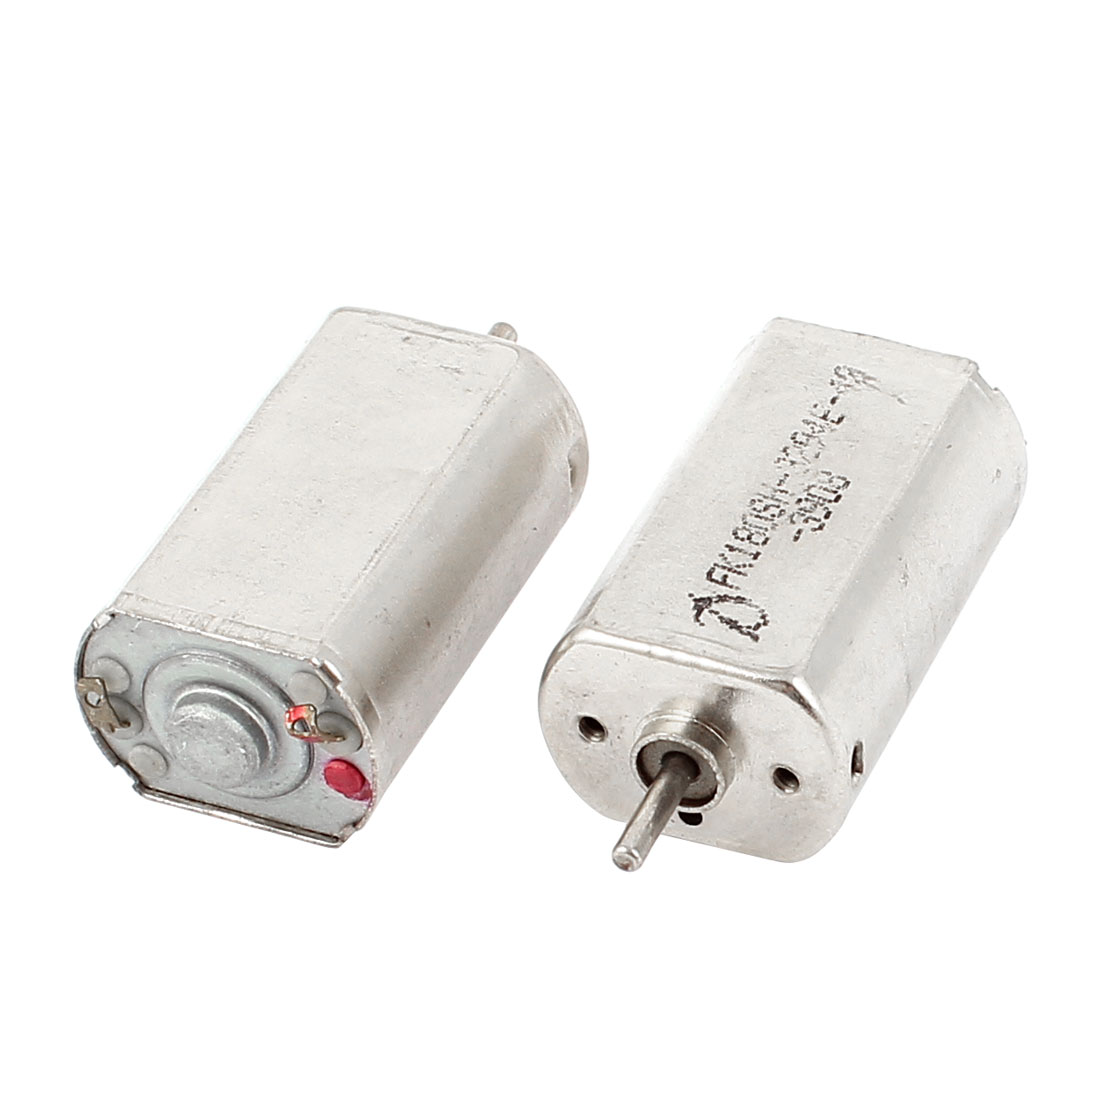 2 Pcs 3V 7300RPM 2mm Shaft Dia High Torque Mini DC Motor for DIY Toys